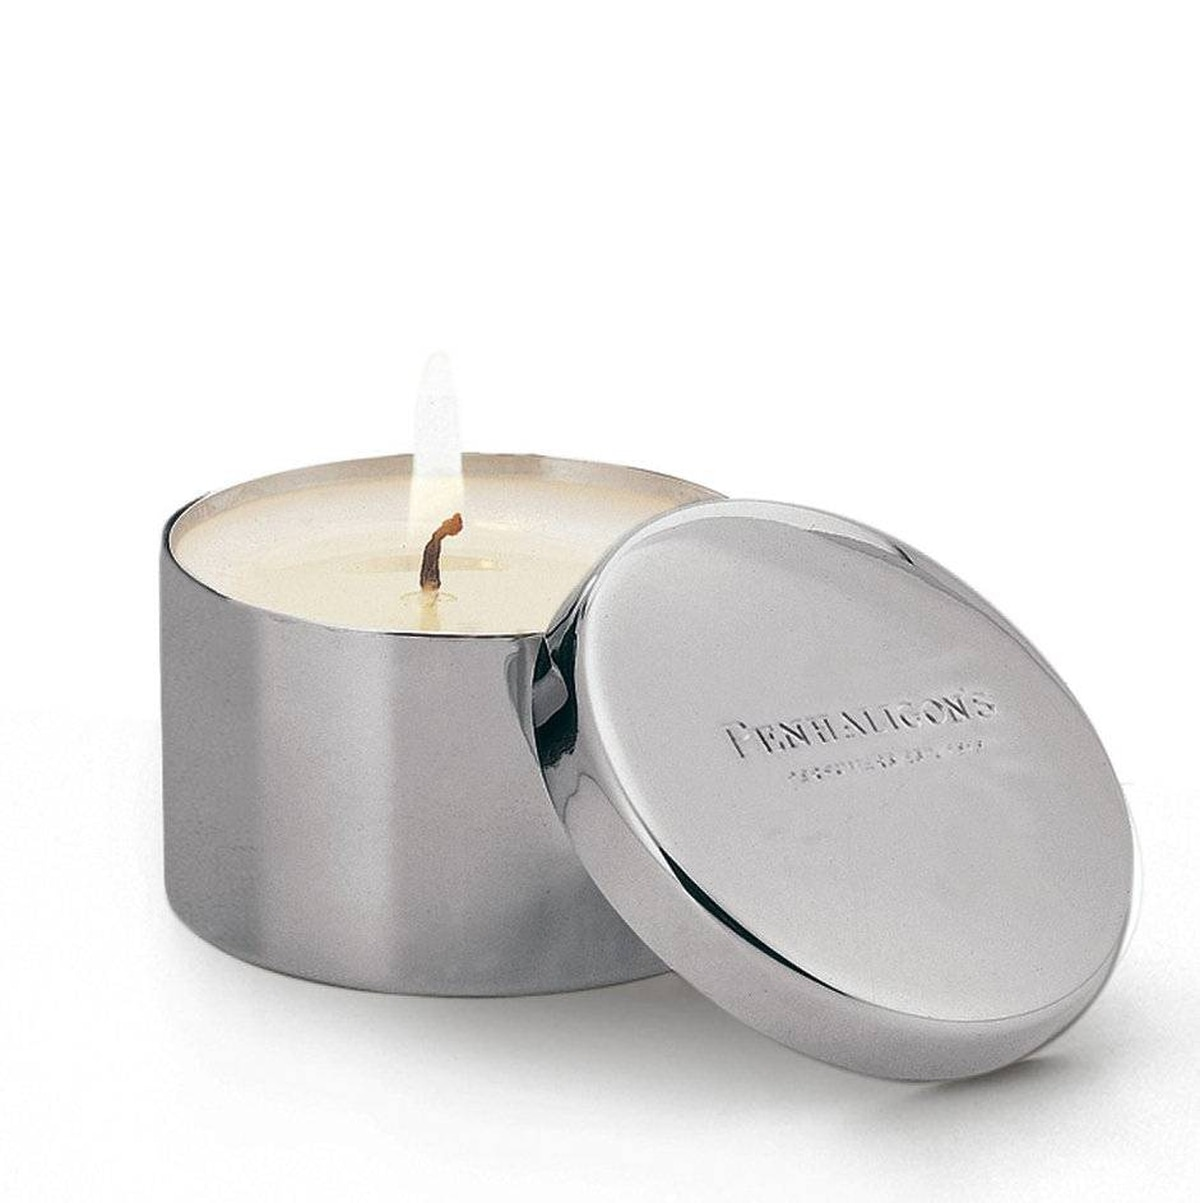 Setting the mood Mood lighting comes in a portable silver-plated package with Penhaligon's Quercus travel candle. Its fragrant medley of citrus, basil, jasmine, cardamom and lily of the valley scents can instantly turn a stuffy hotel room into a homey pied-à-terre. $55 (U.S.); penhaligons.com